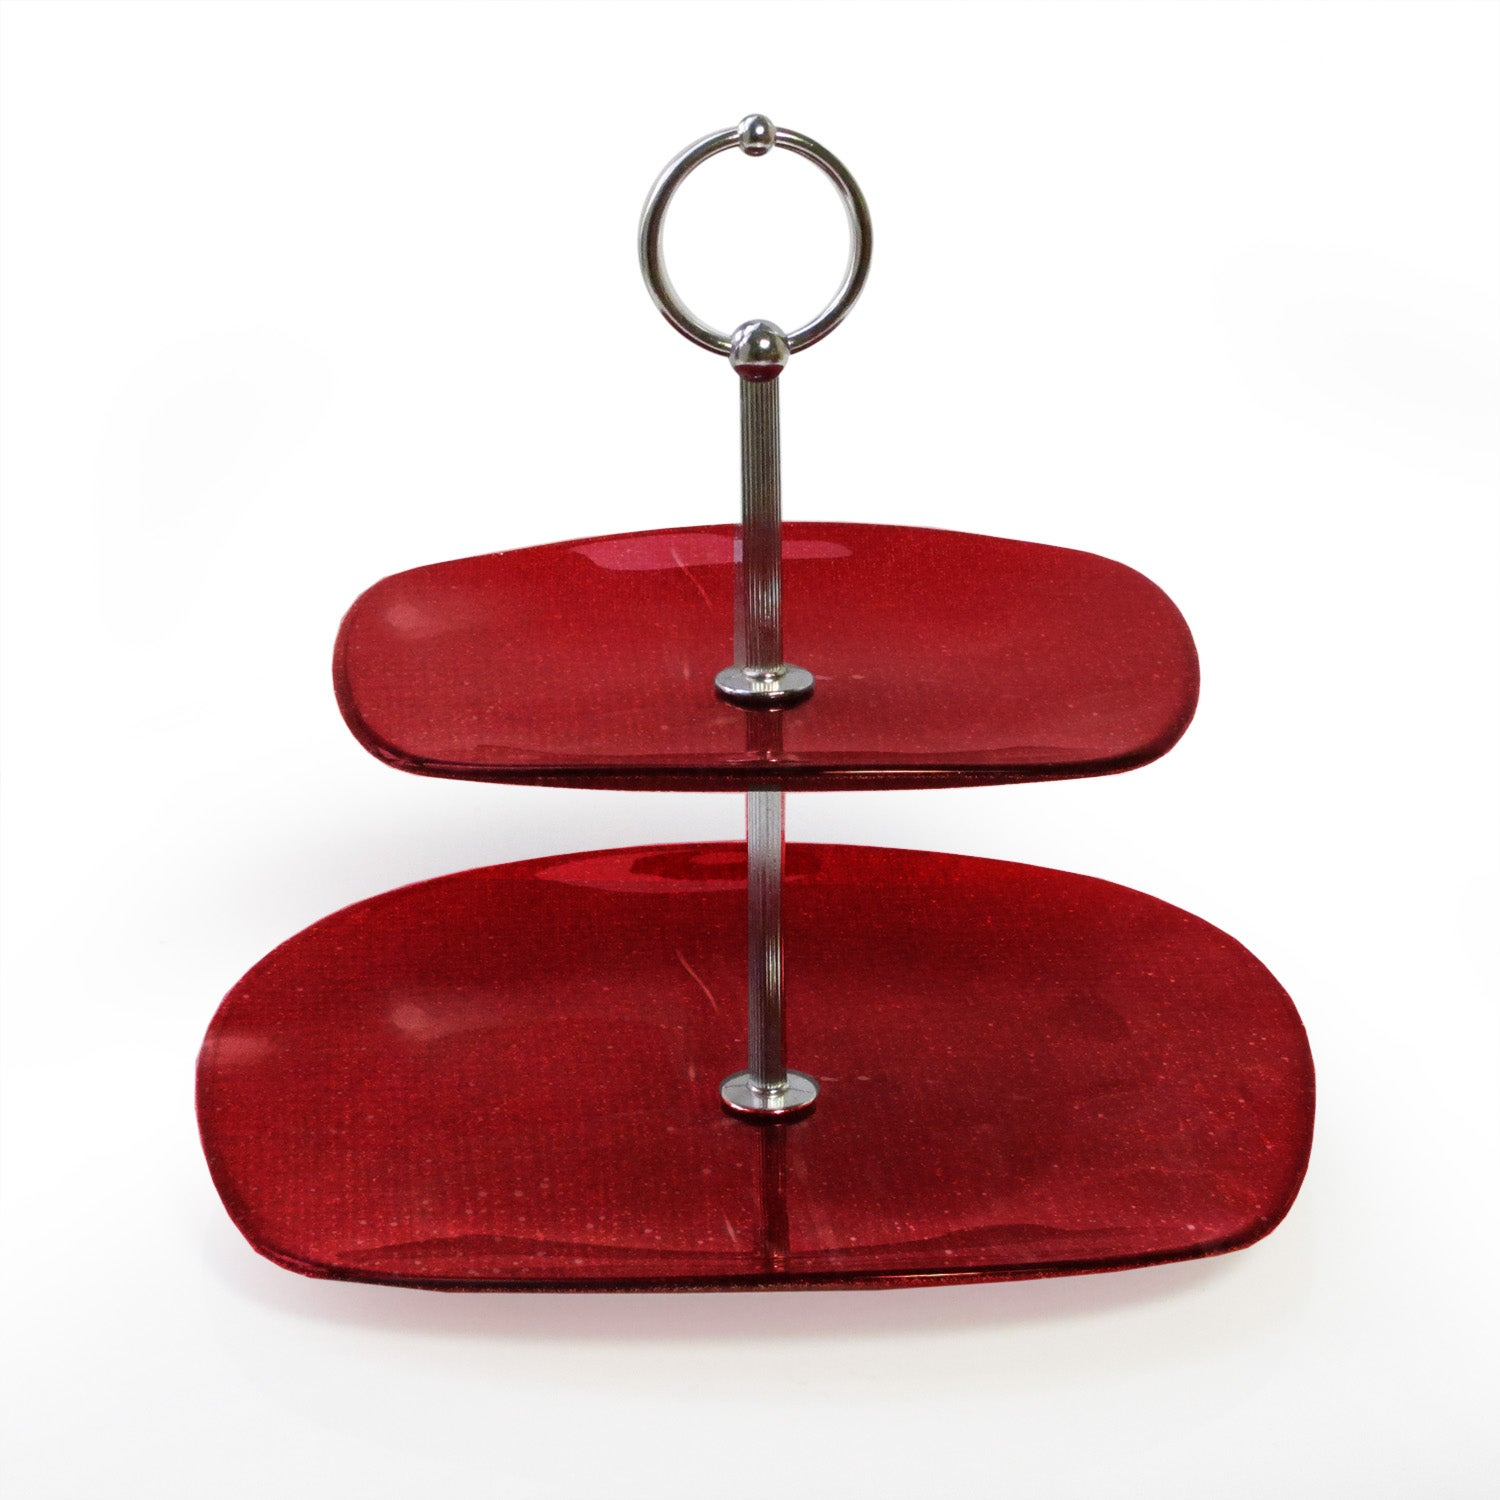 Notions by Jay Glitter Red 2-tier Platter